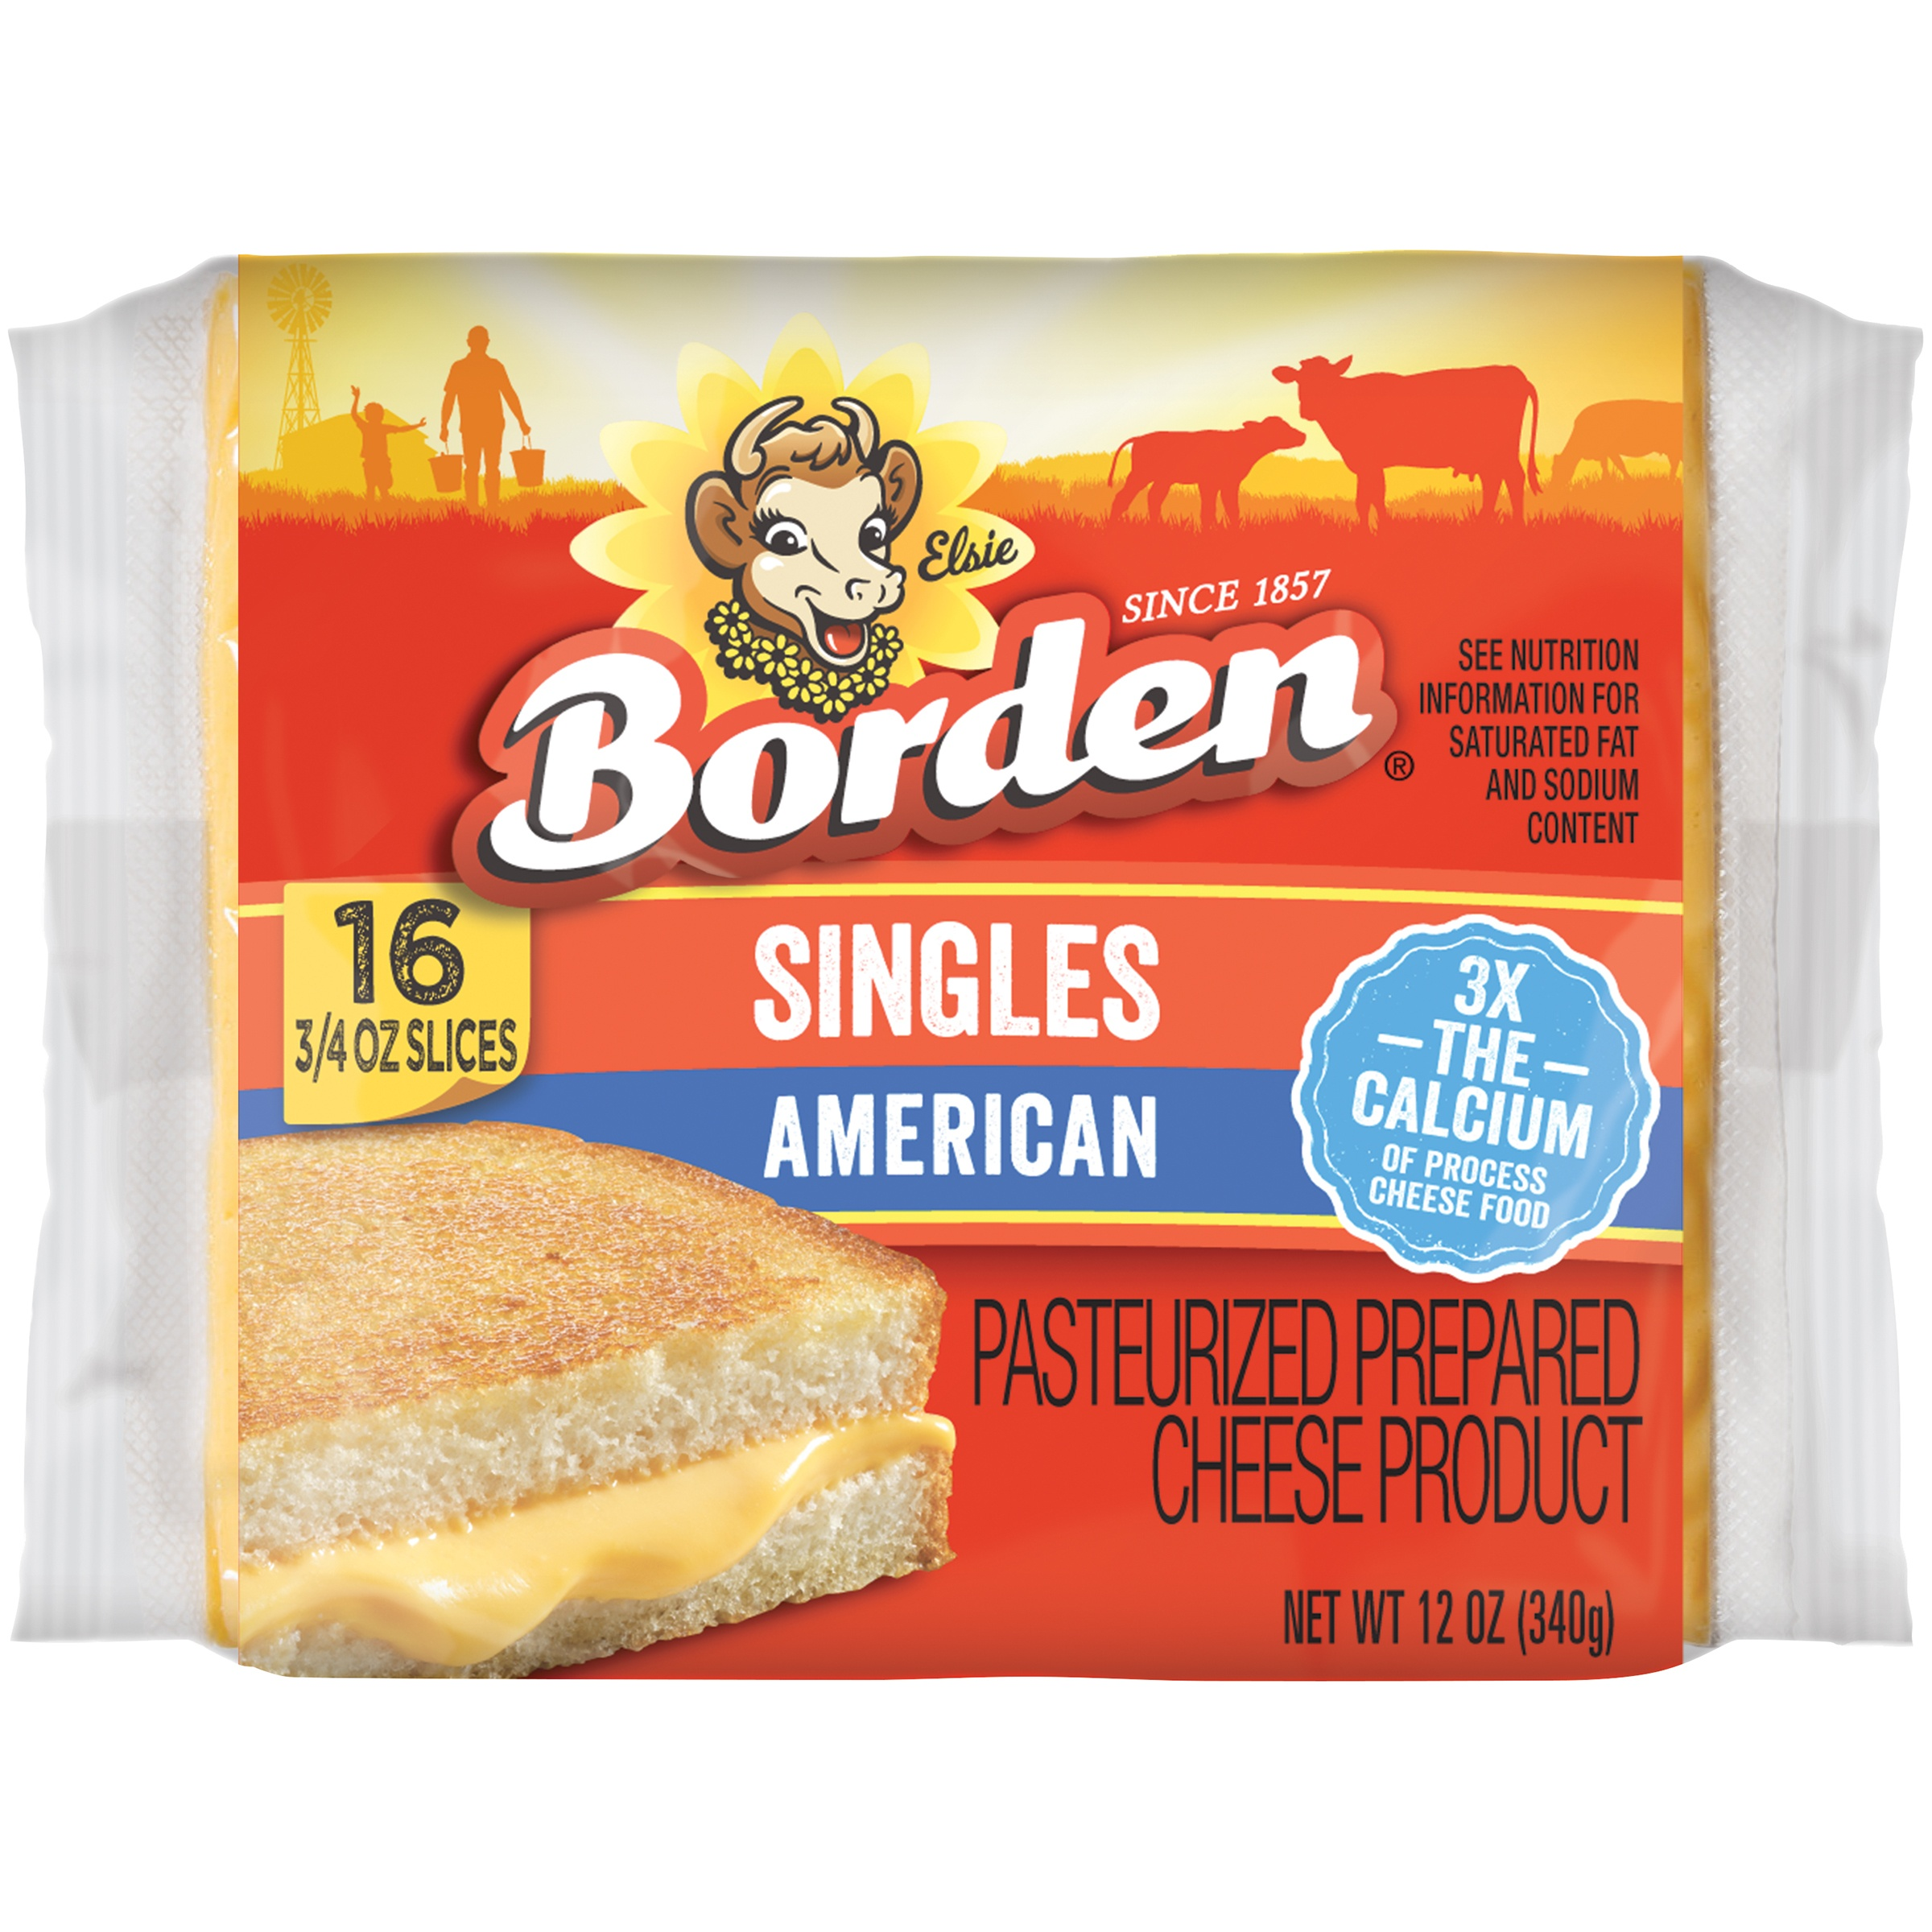 Borden American Singles Cheese Product, 16 ct